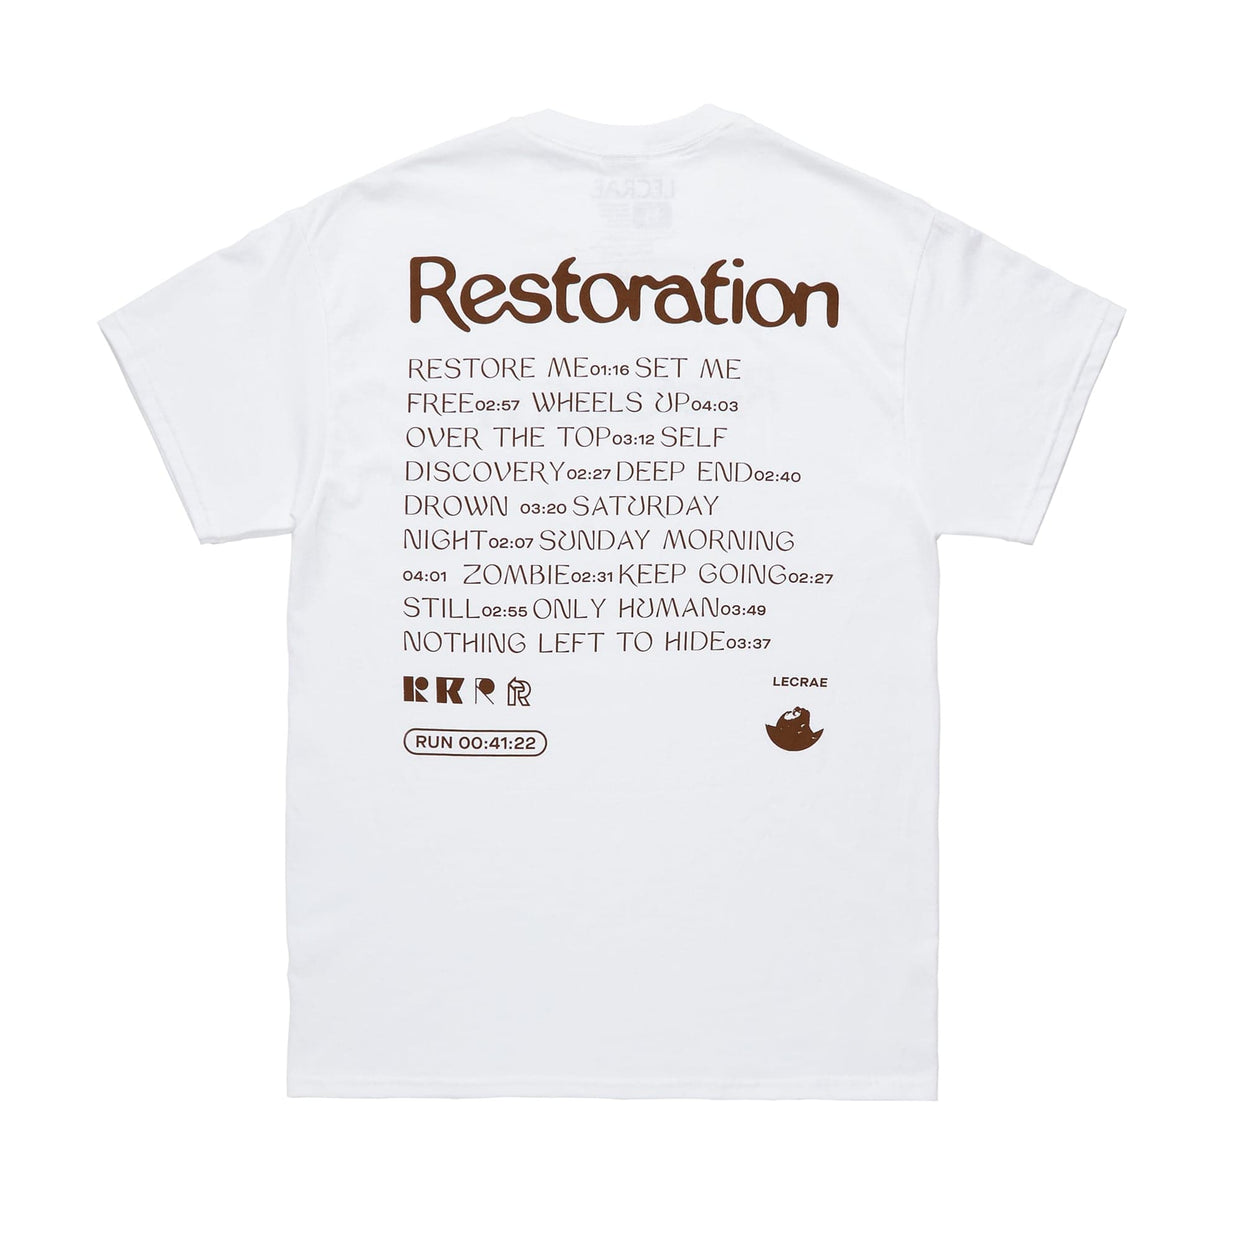 'Restoration Track List' T-Shirt